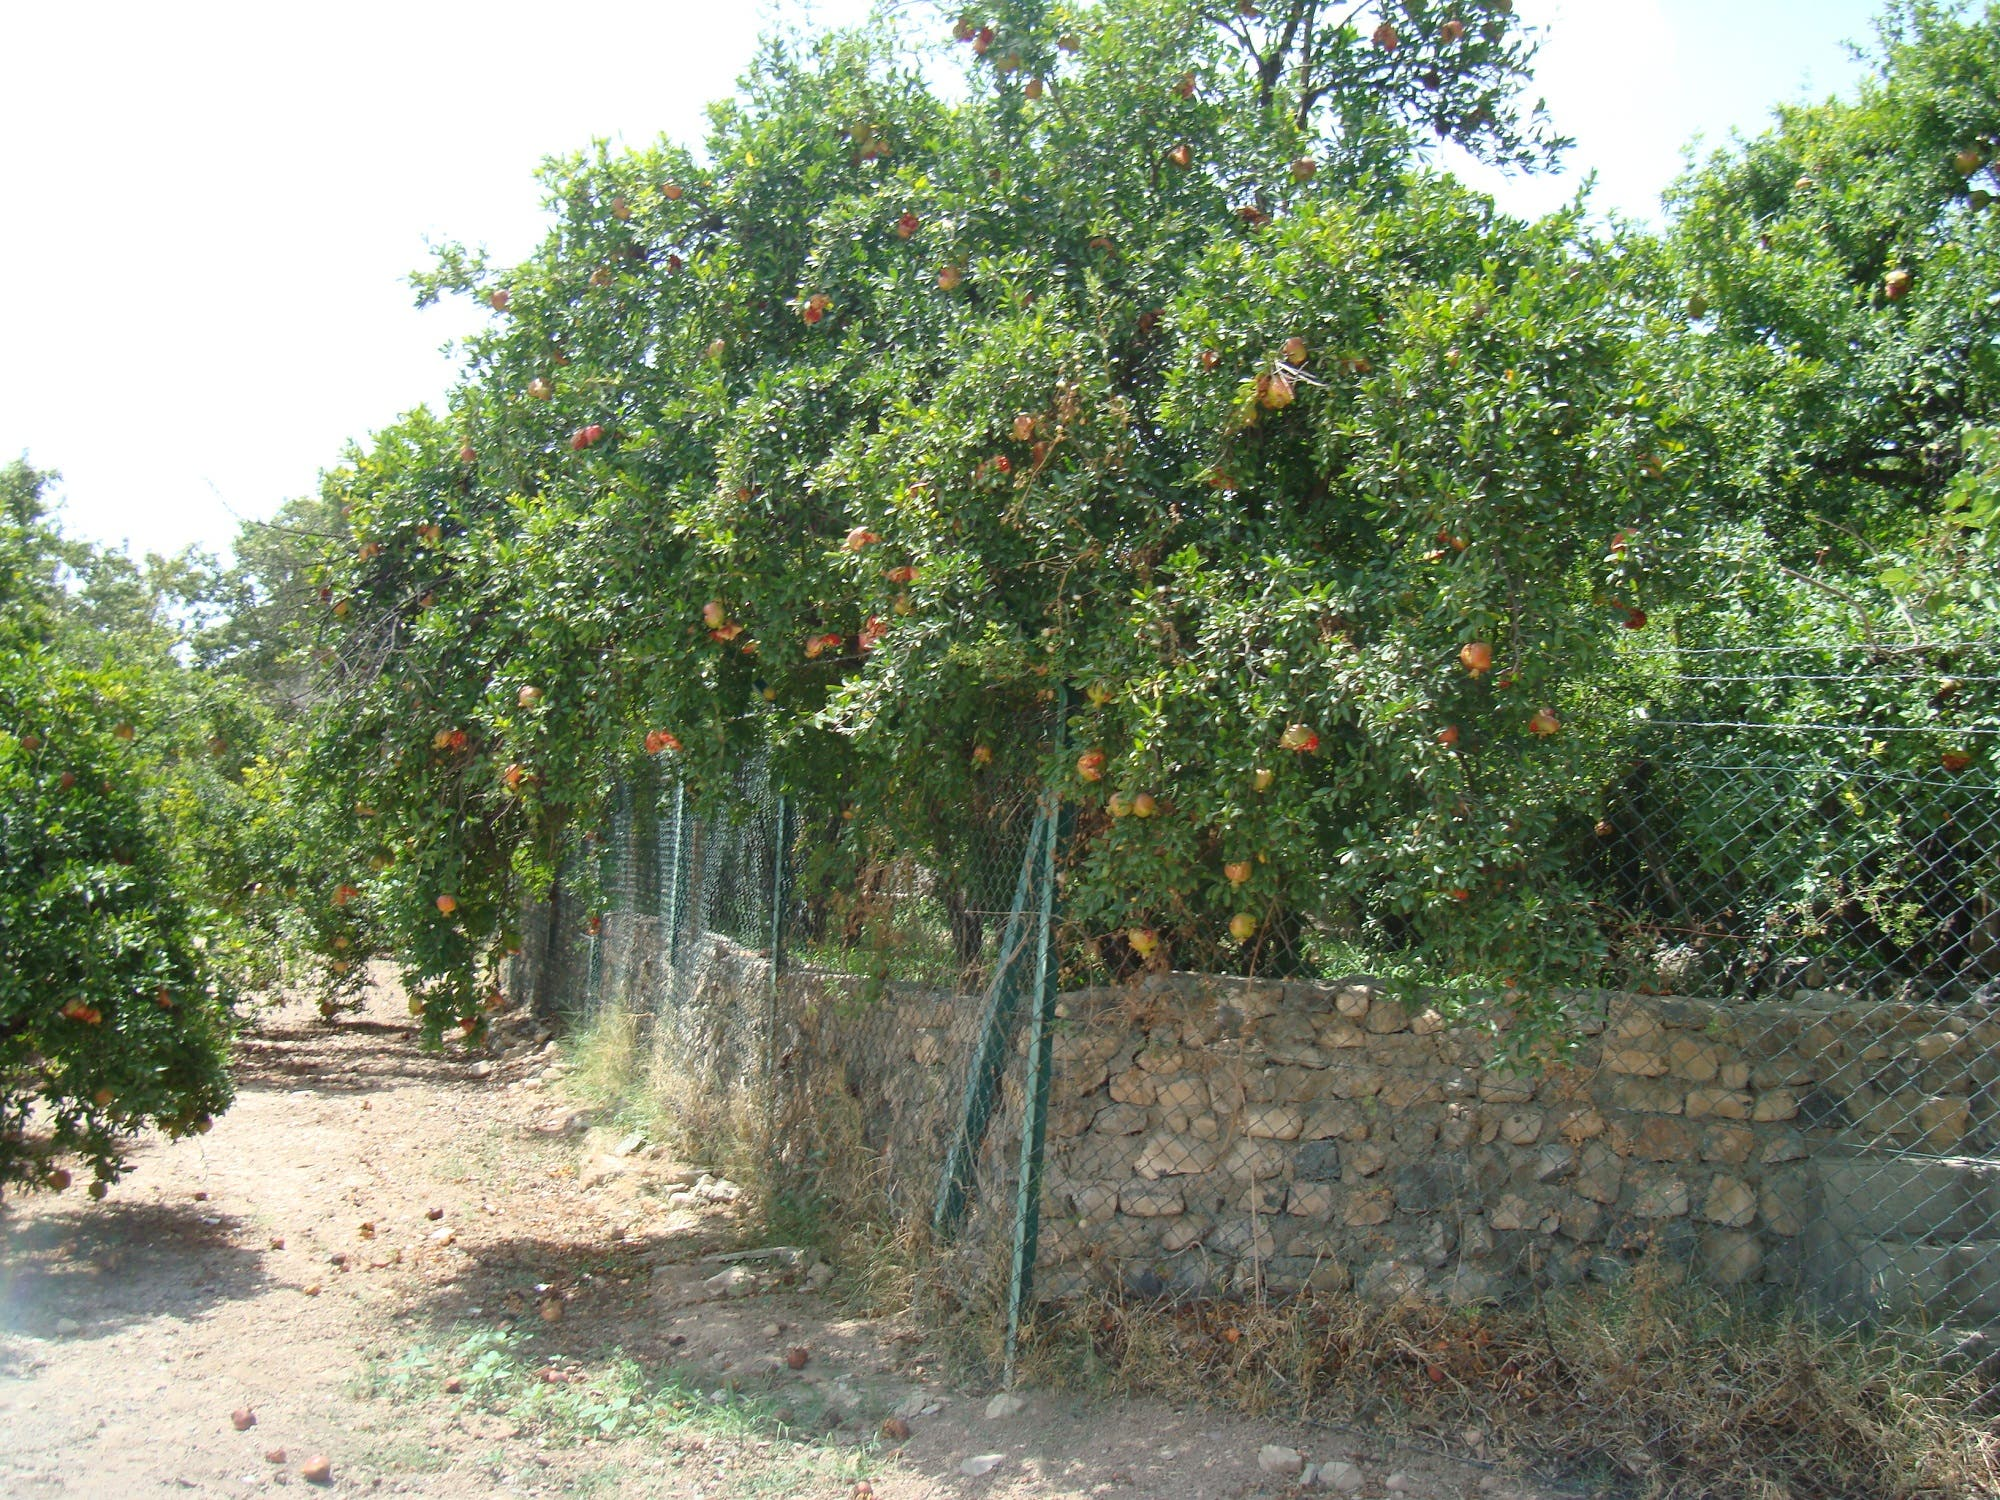 Among the most popular fruit in the valley is pomegranate. (Supplied)